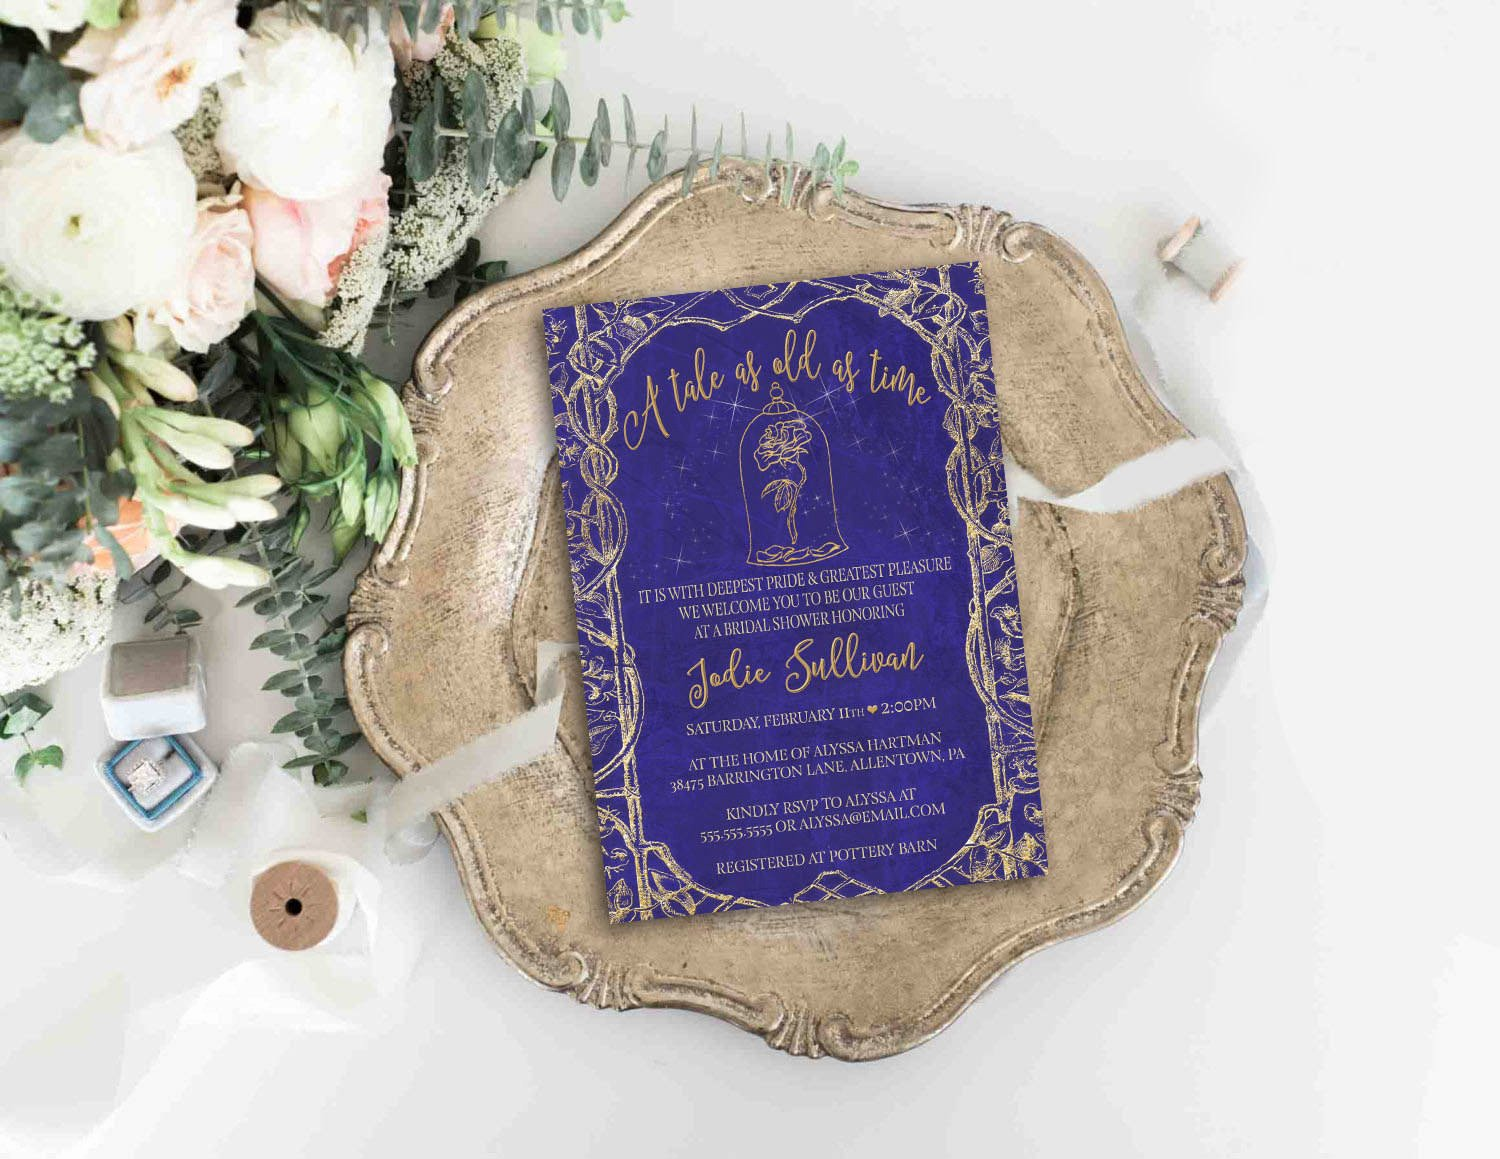 Disney Bridal Shower Invitations Lovely Beauty and the Beast Invitation Disney Wedding Bridal Shower